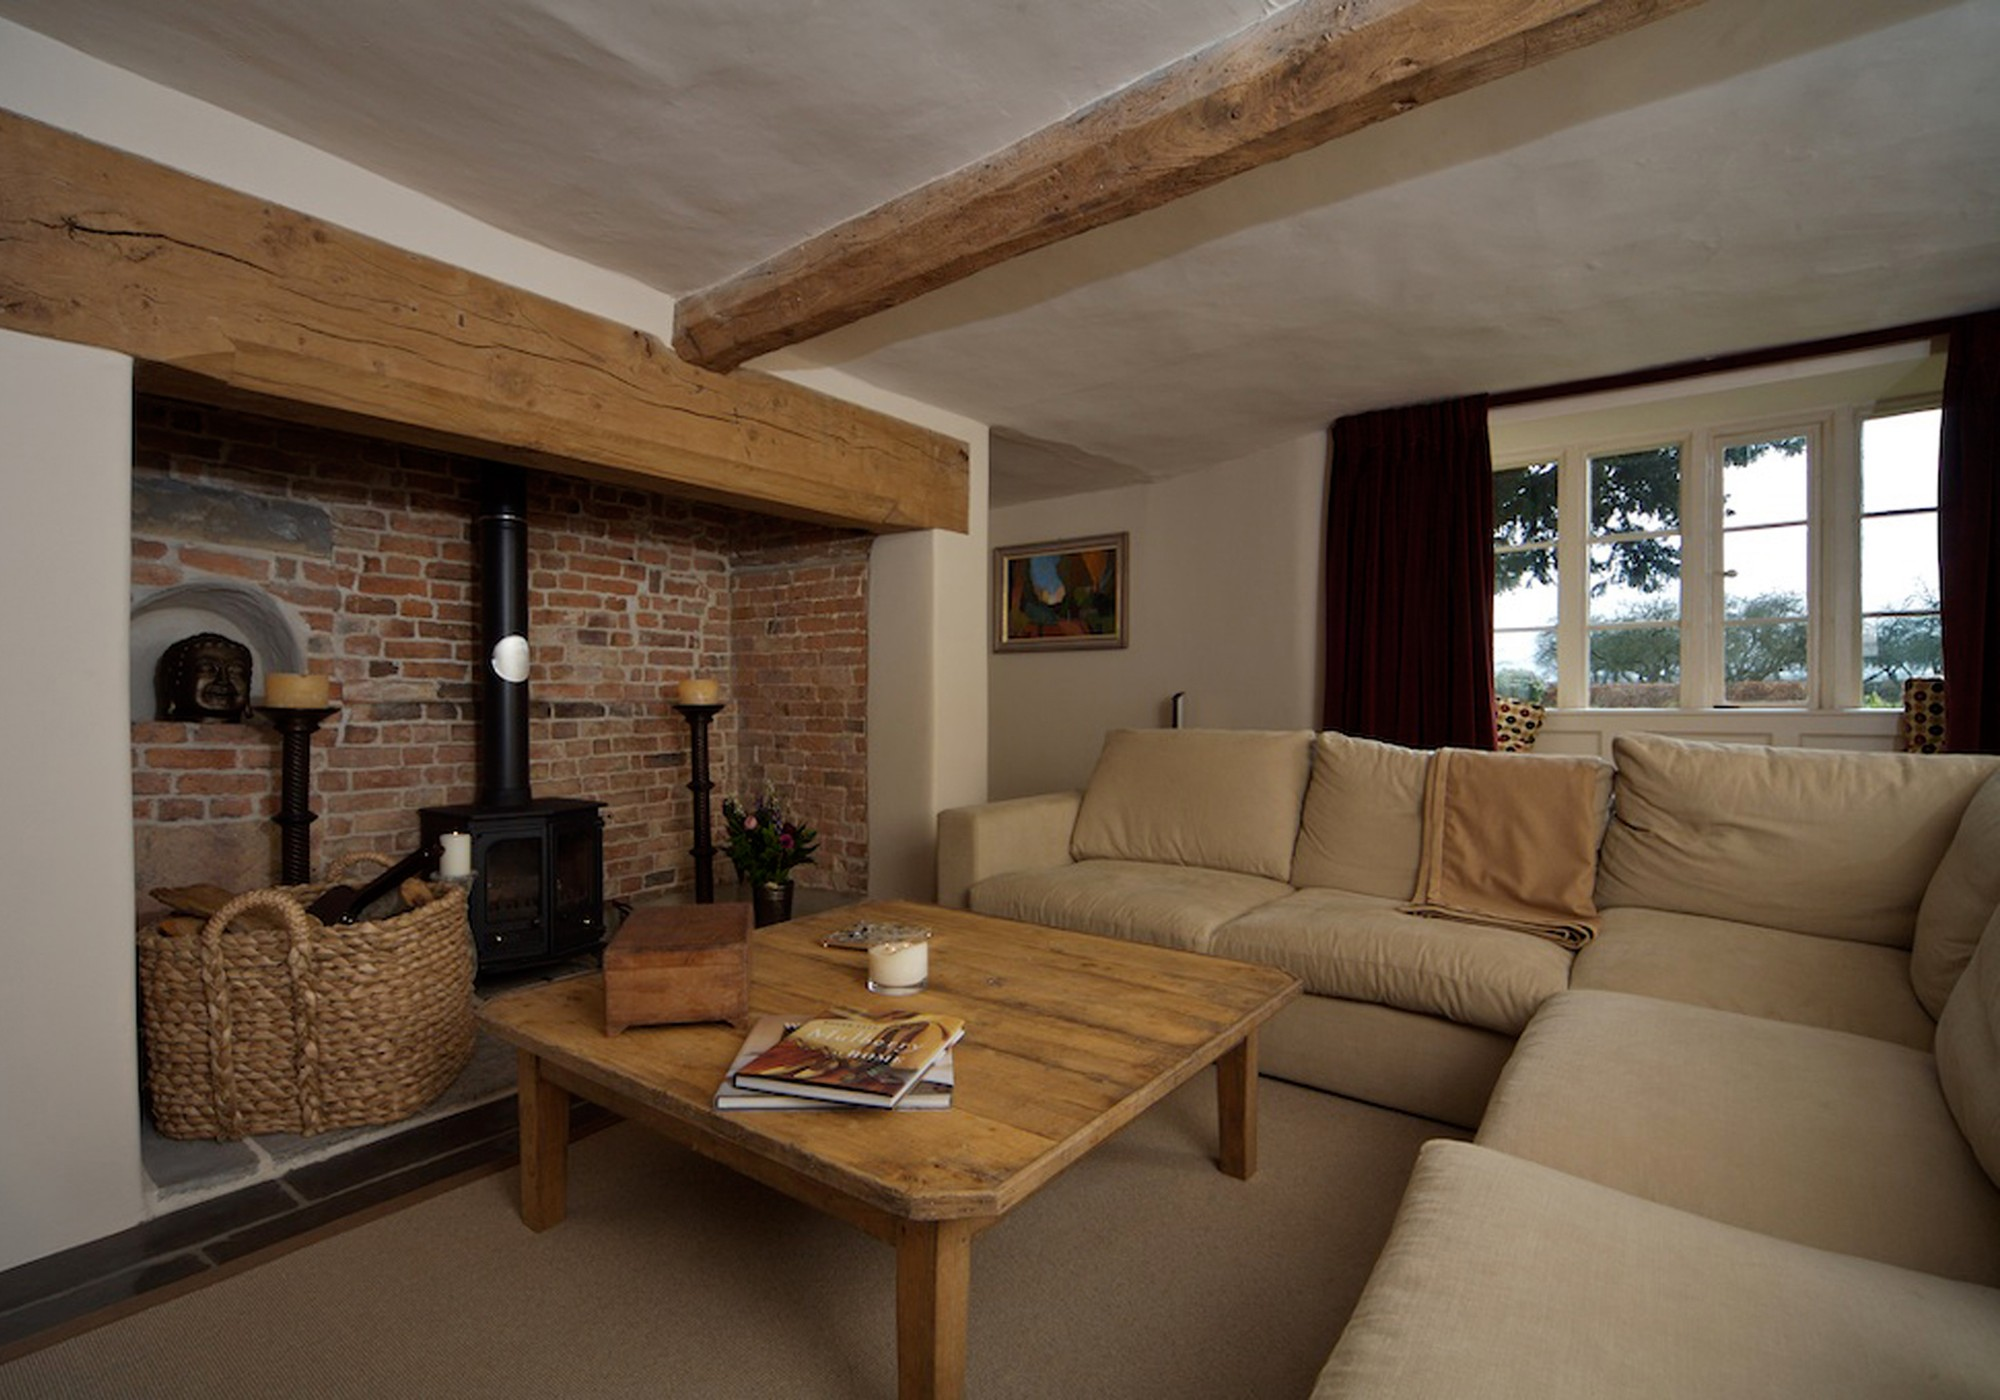 English traditional farmhouse interiors for Home interior design ideas uk